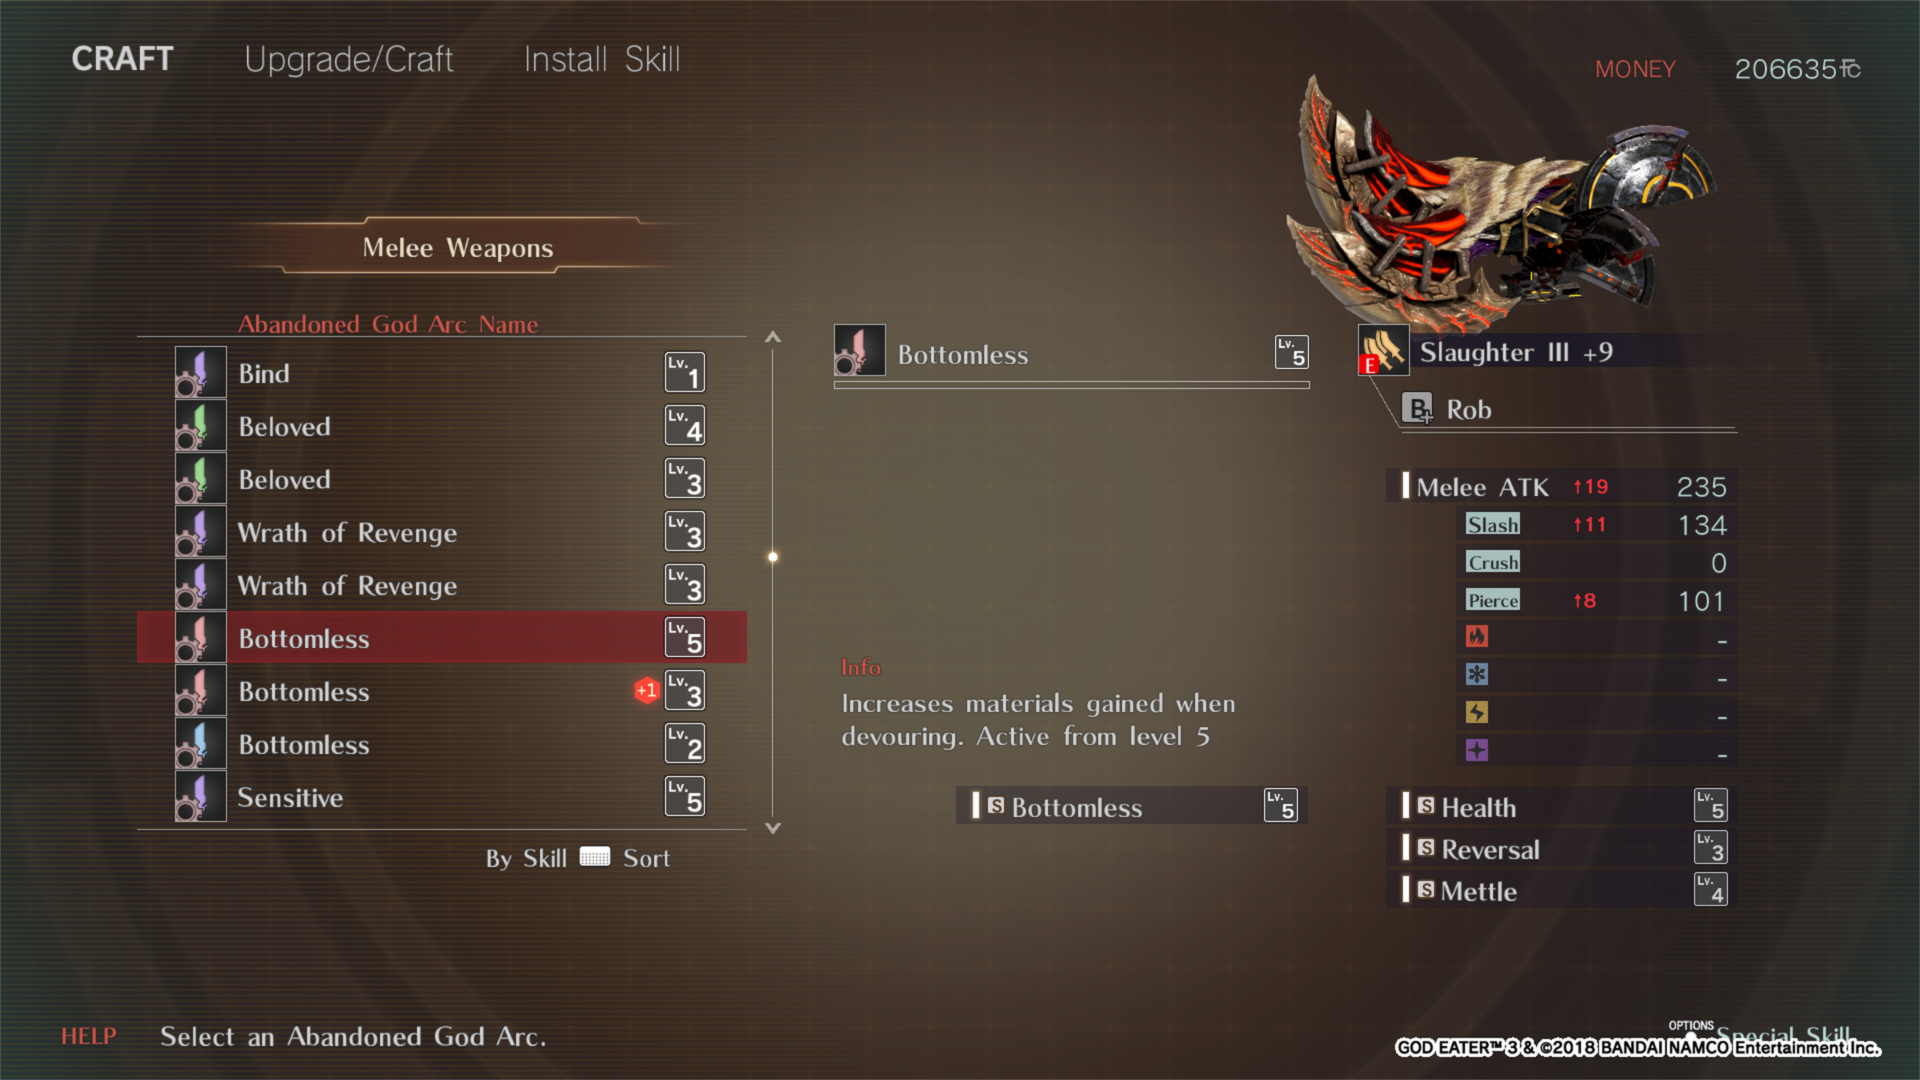 God Eater 3 Materials Guide: How to maximize your grind for